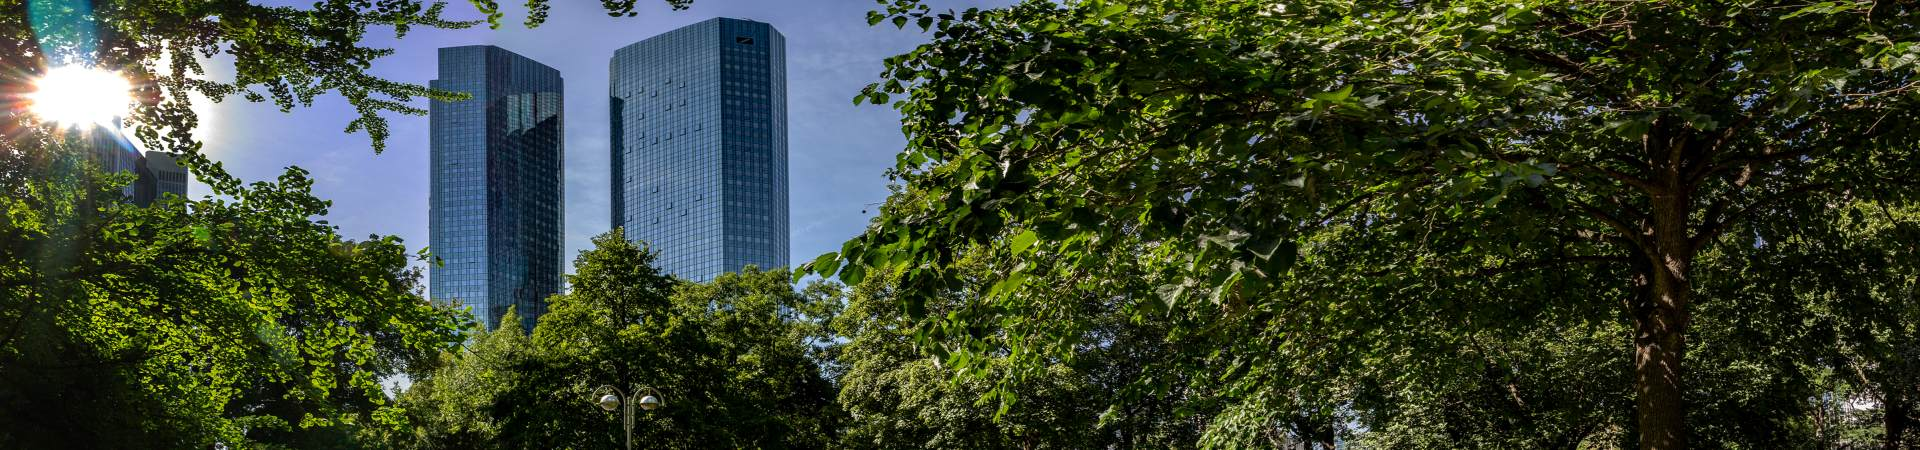 Green-towers--Deutsche-Bank-Headquarters.jpeg